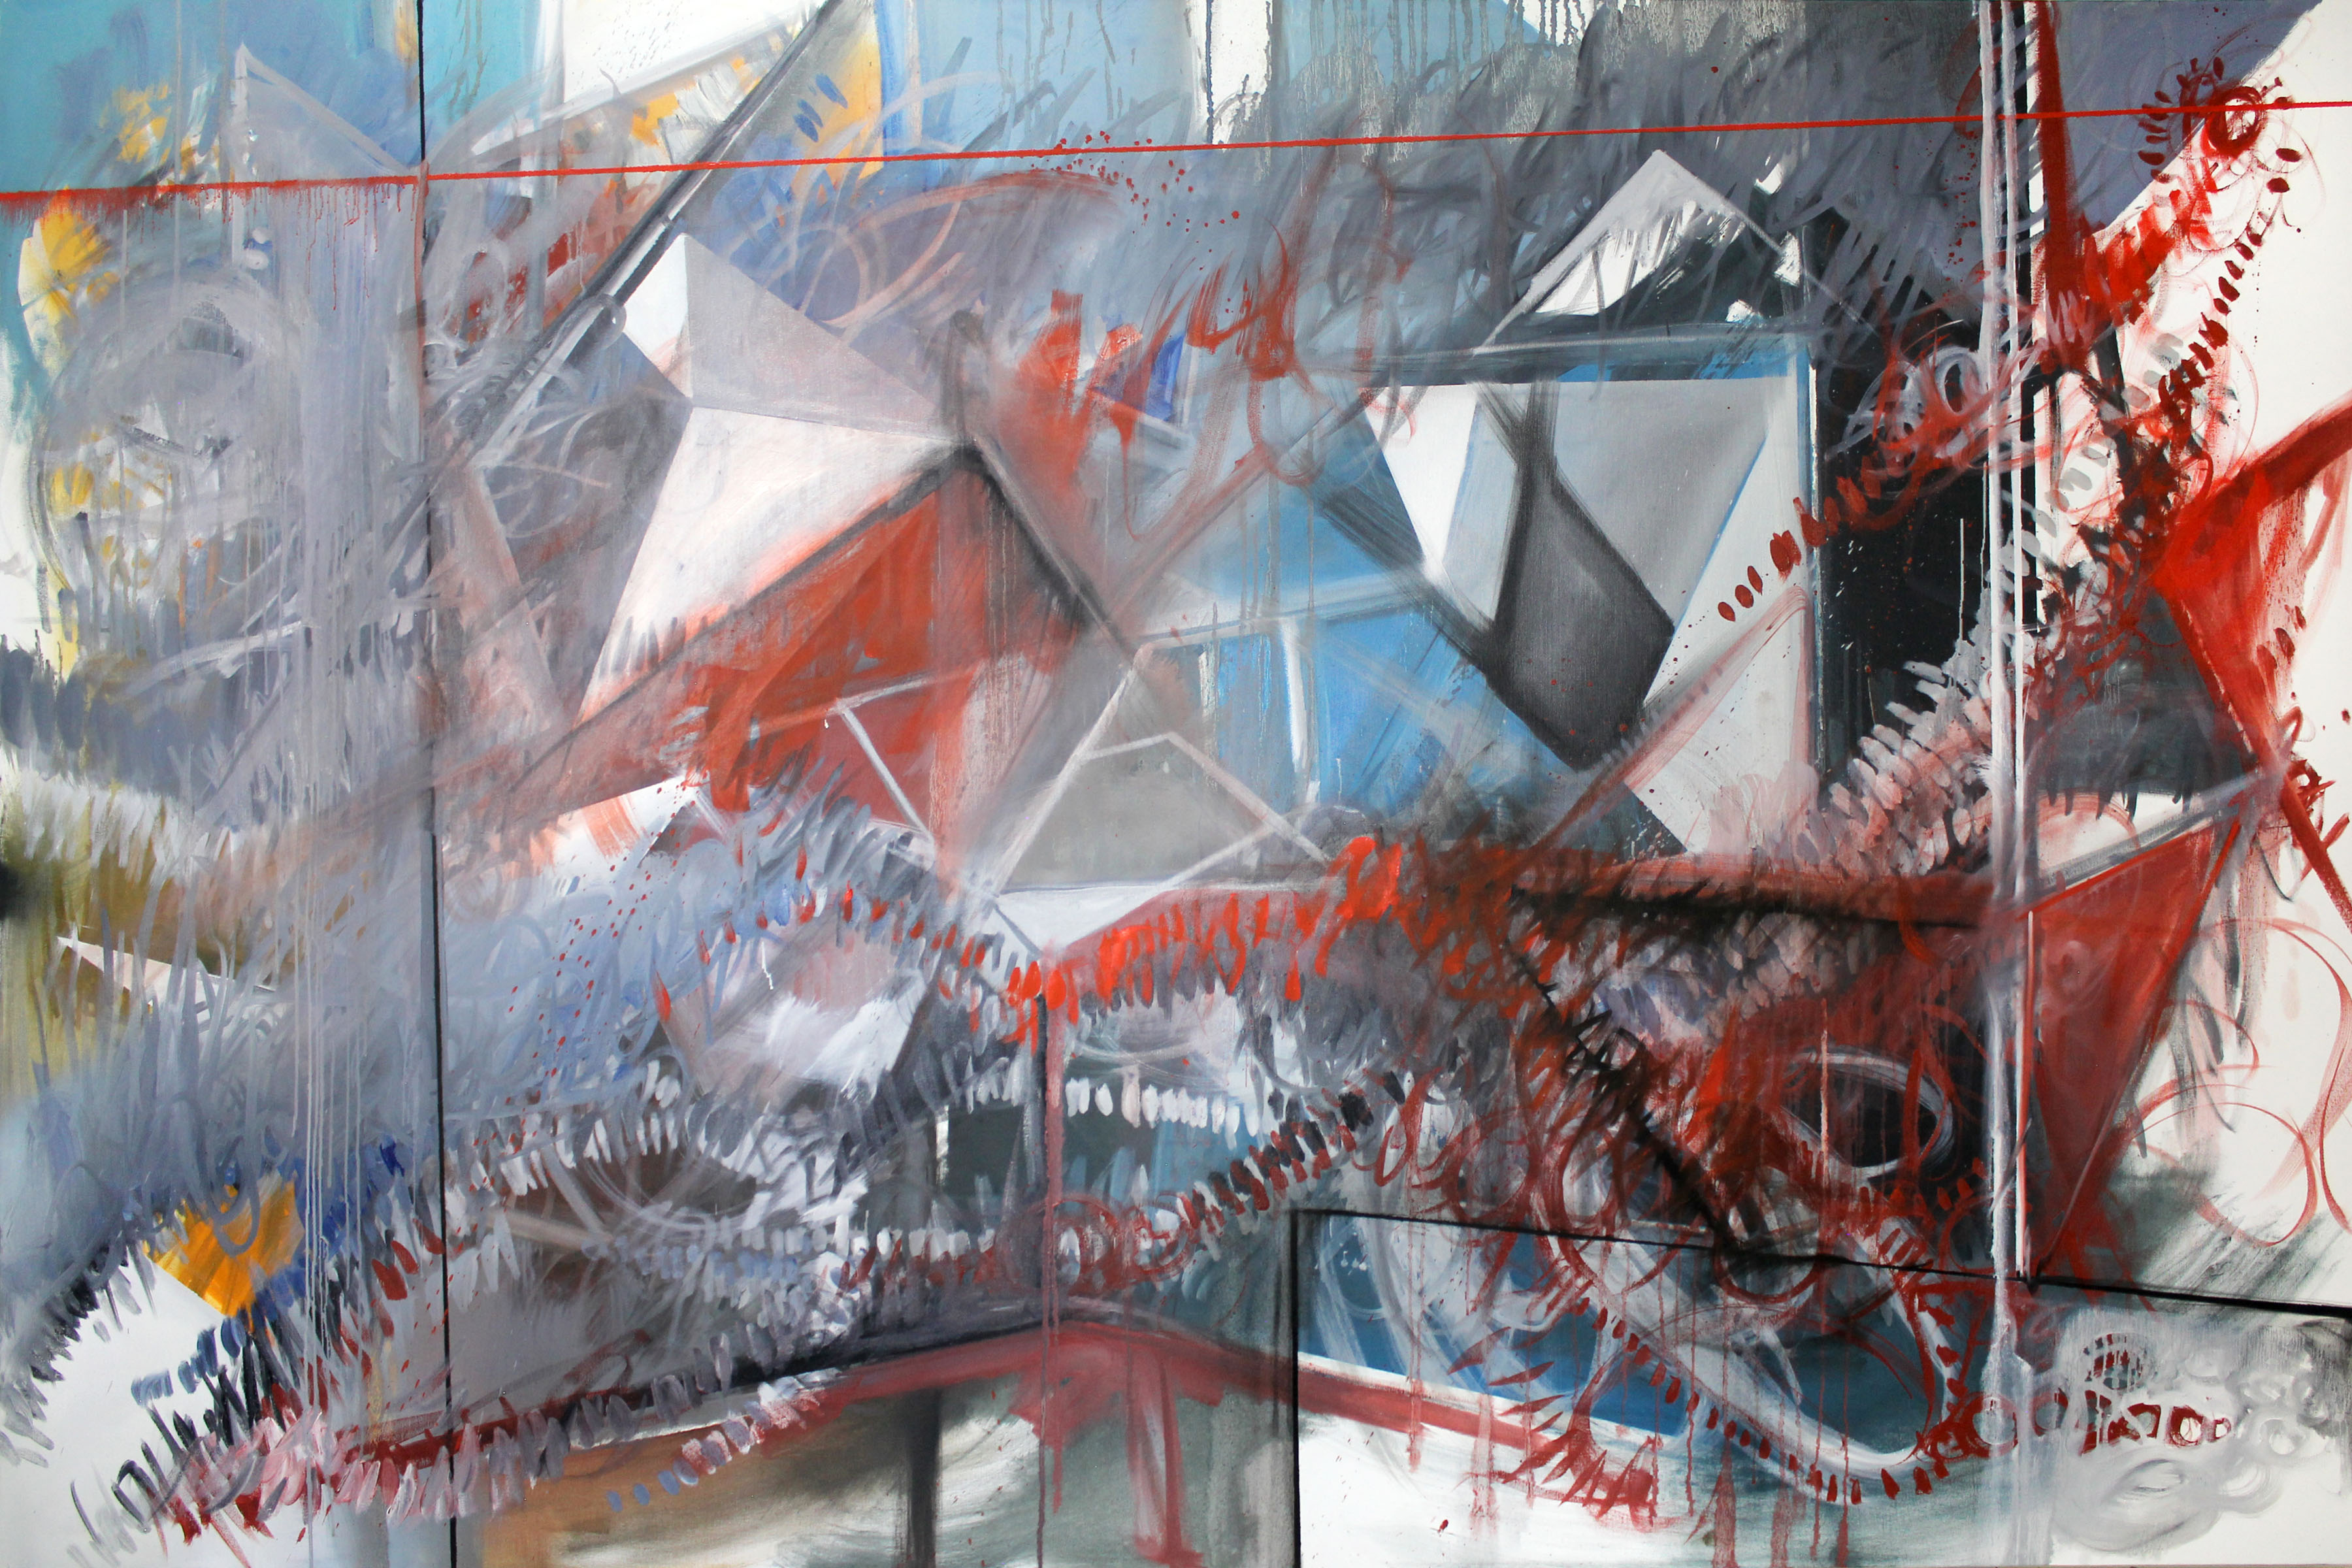 """Phillip Potter """"Loose Cognition of Time #3, 72""""x48"""" Oil on Canvas"""""""